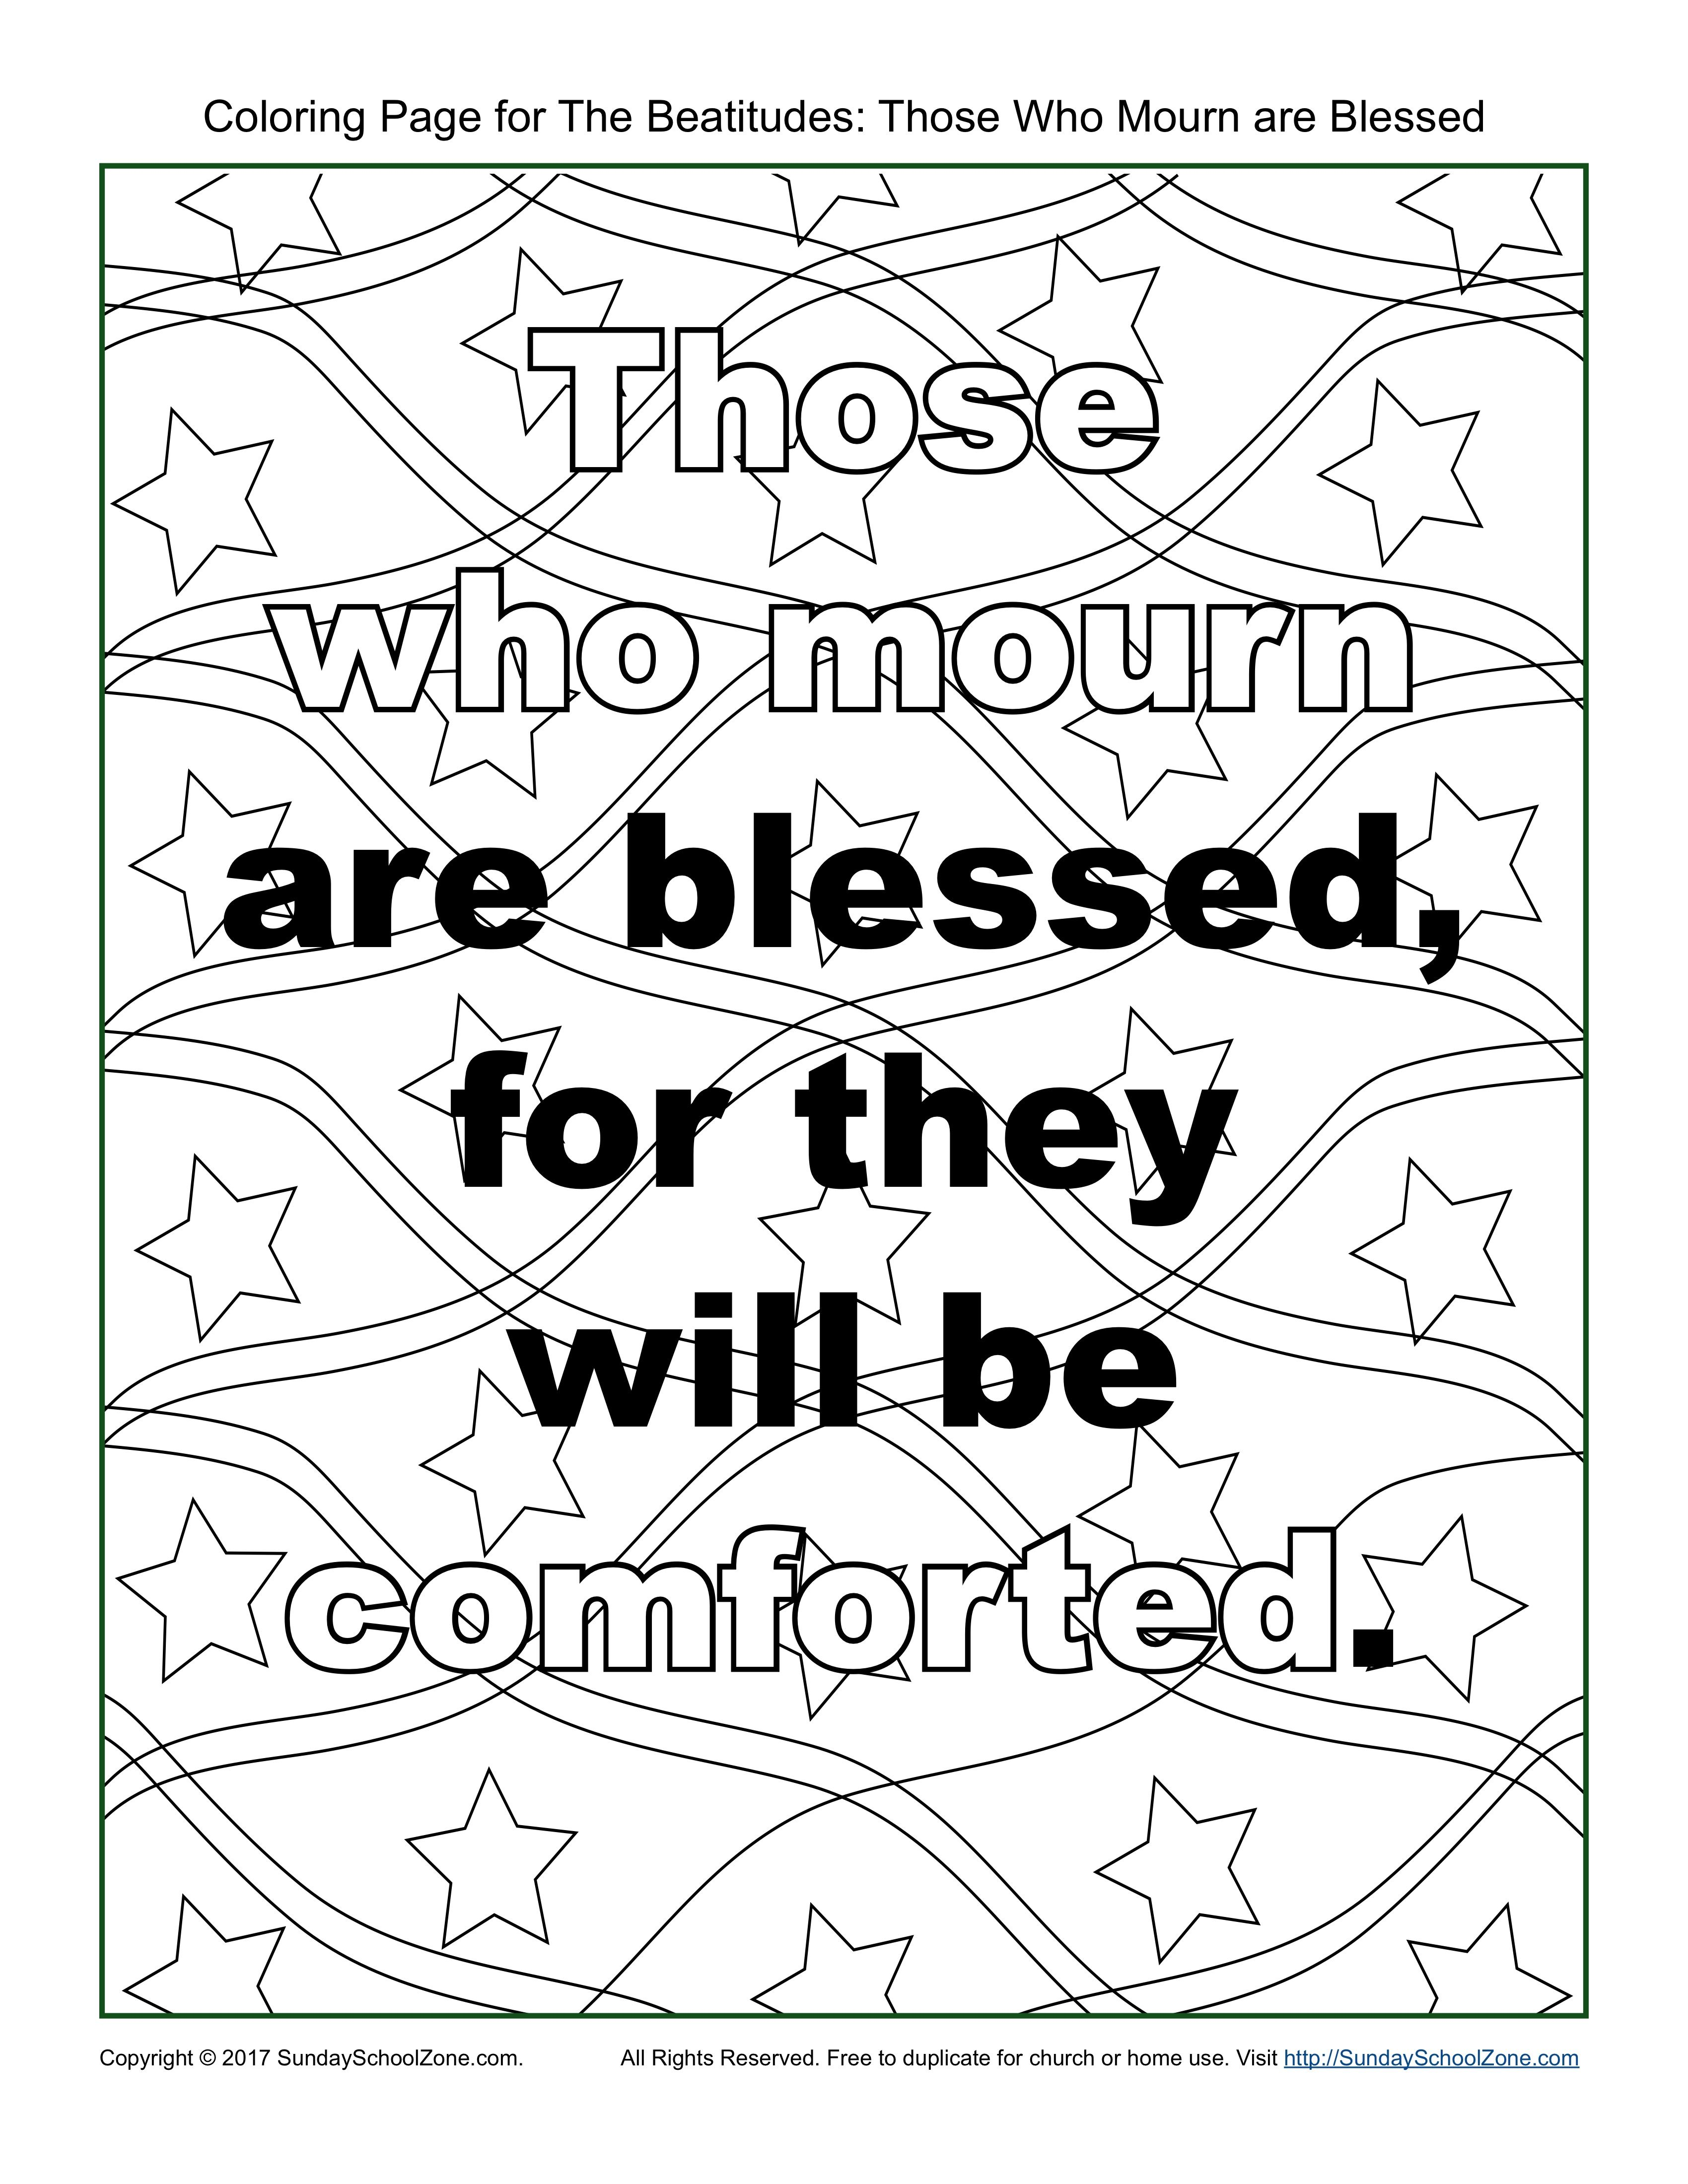 Those Who Mourn Beatitudes Coloring Page On Sunday School Zone Sunday School Coloring Sheets Beatitudes Heart Coloring Pages [ 4400 x 3400 Pixel ]